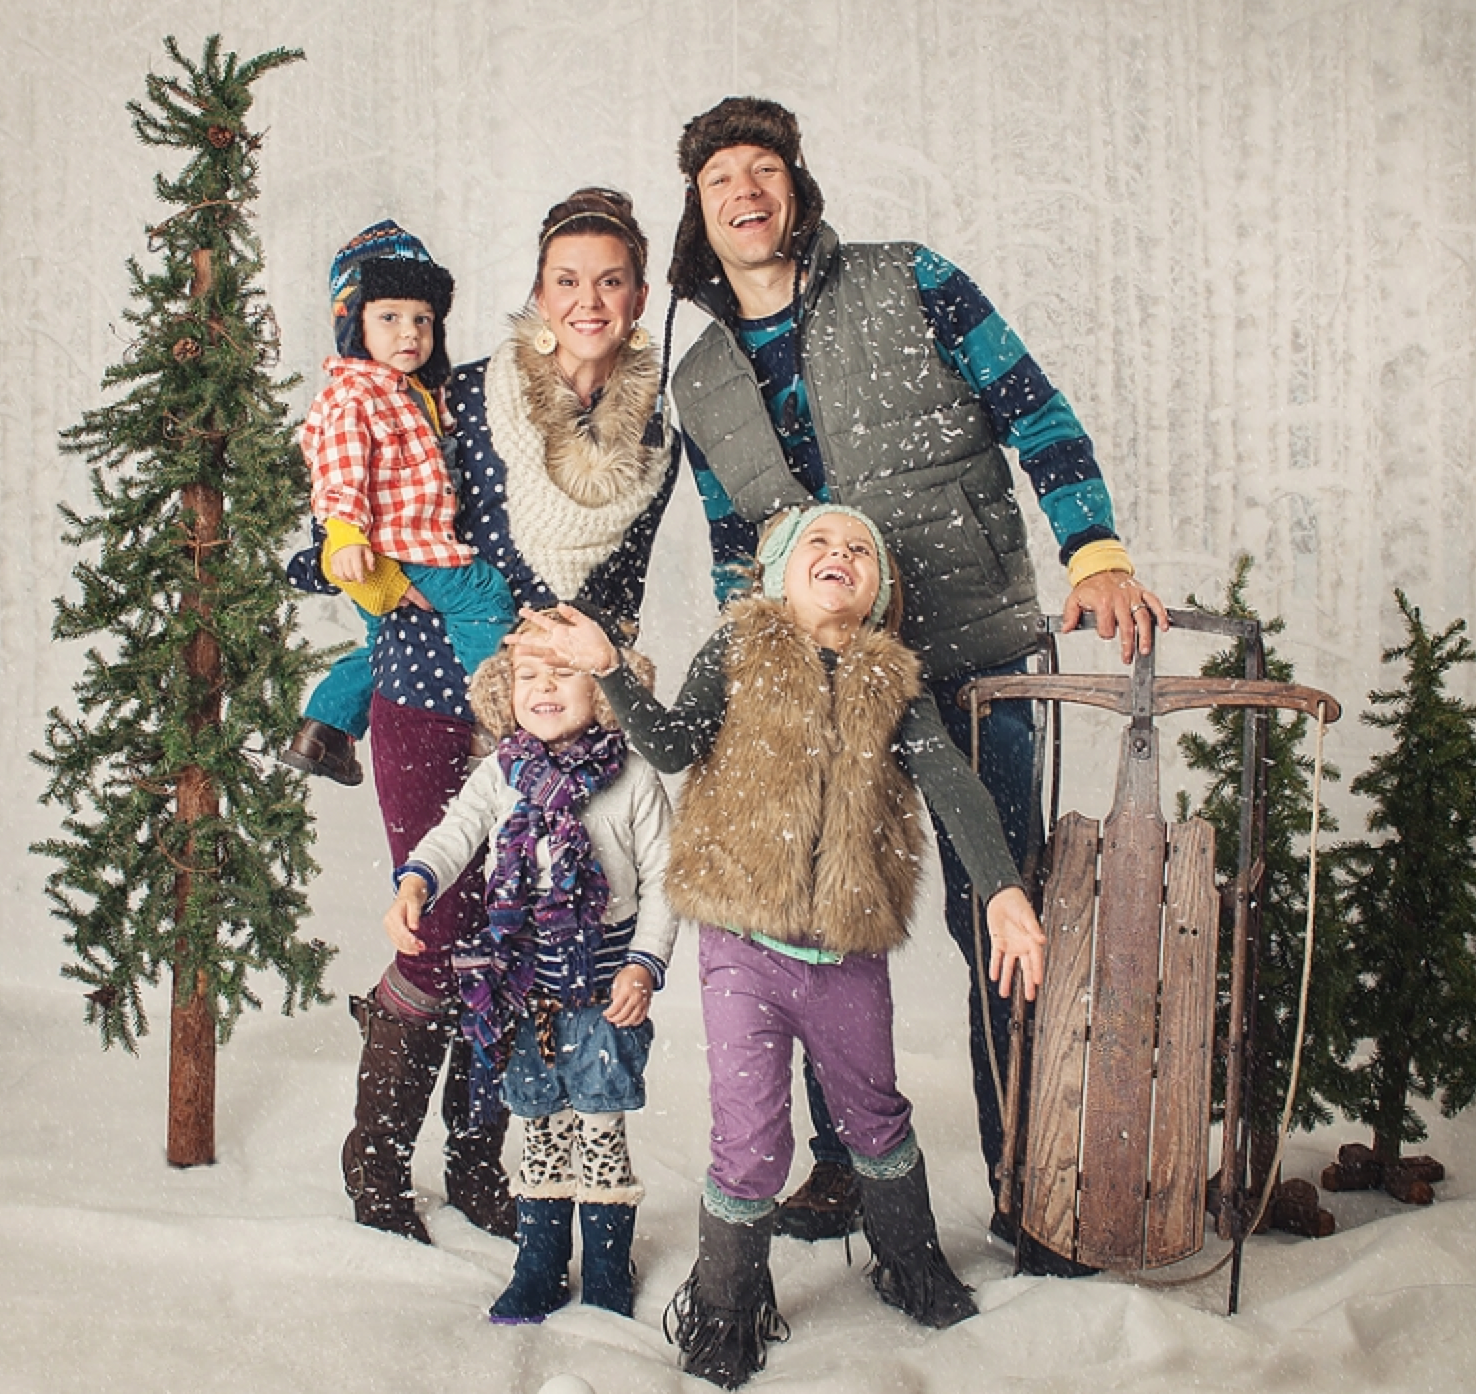 What To Wear in Christmas Photos | 10 Tips